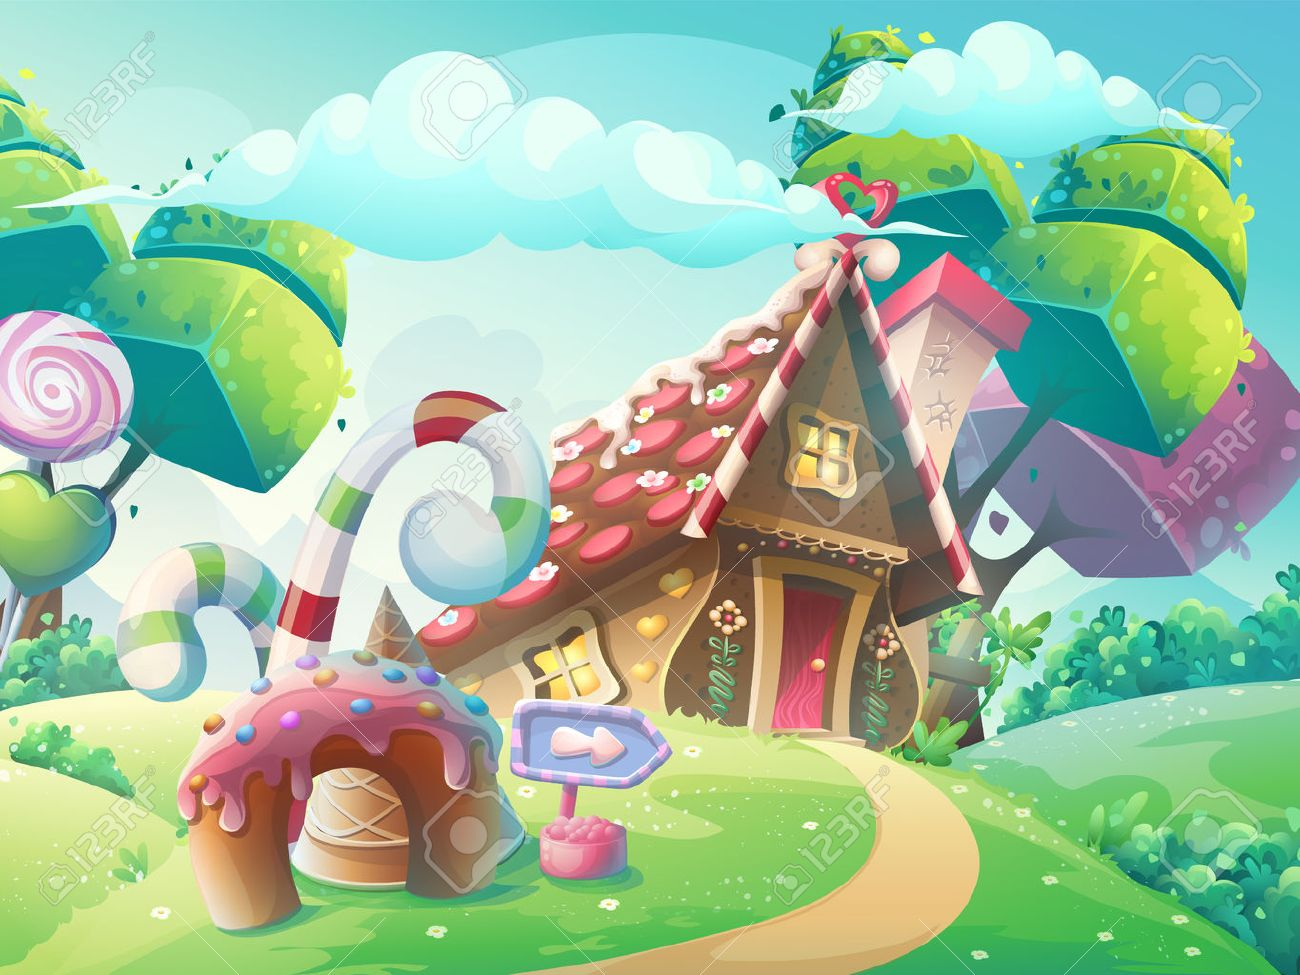 Vector cartoon illustration background sweet candy house with fantasy trees, funny cake and caramel - 67847136